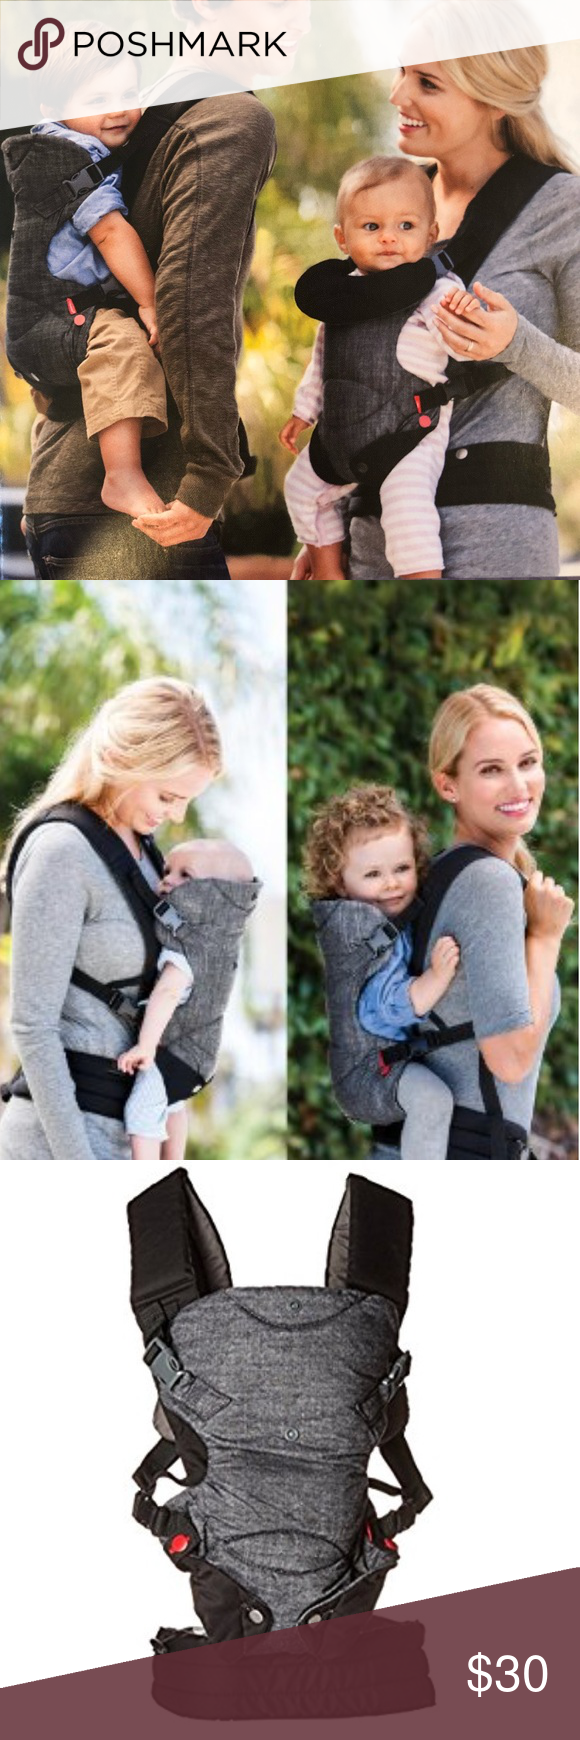 Infantino Fusion Flexible Position Baby Carrier My Posh Picks